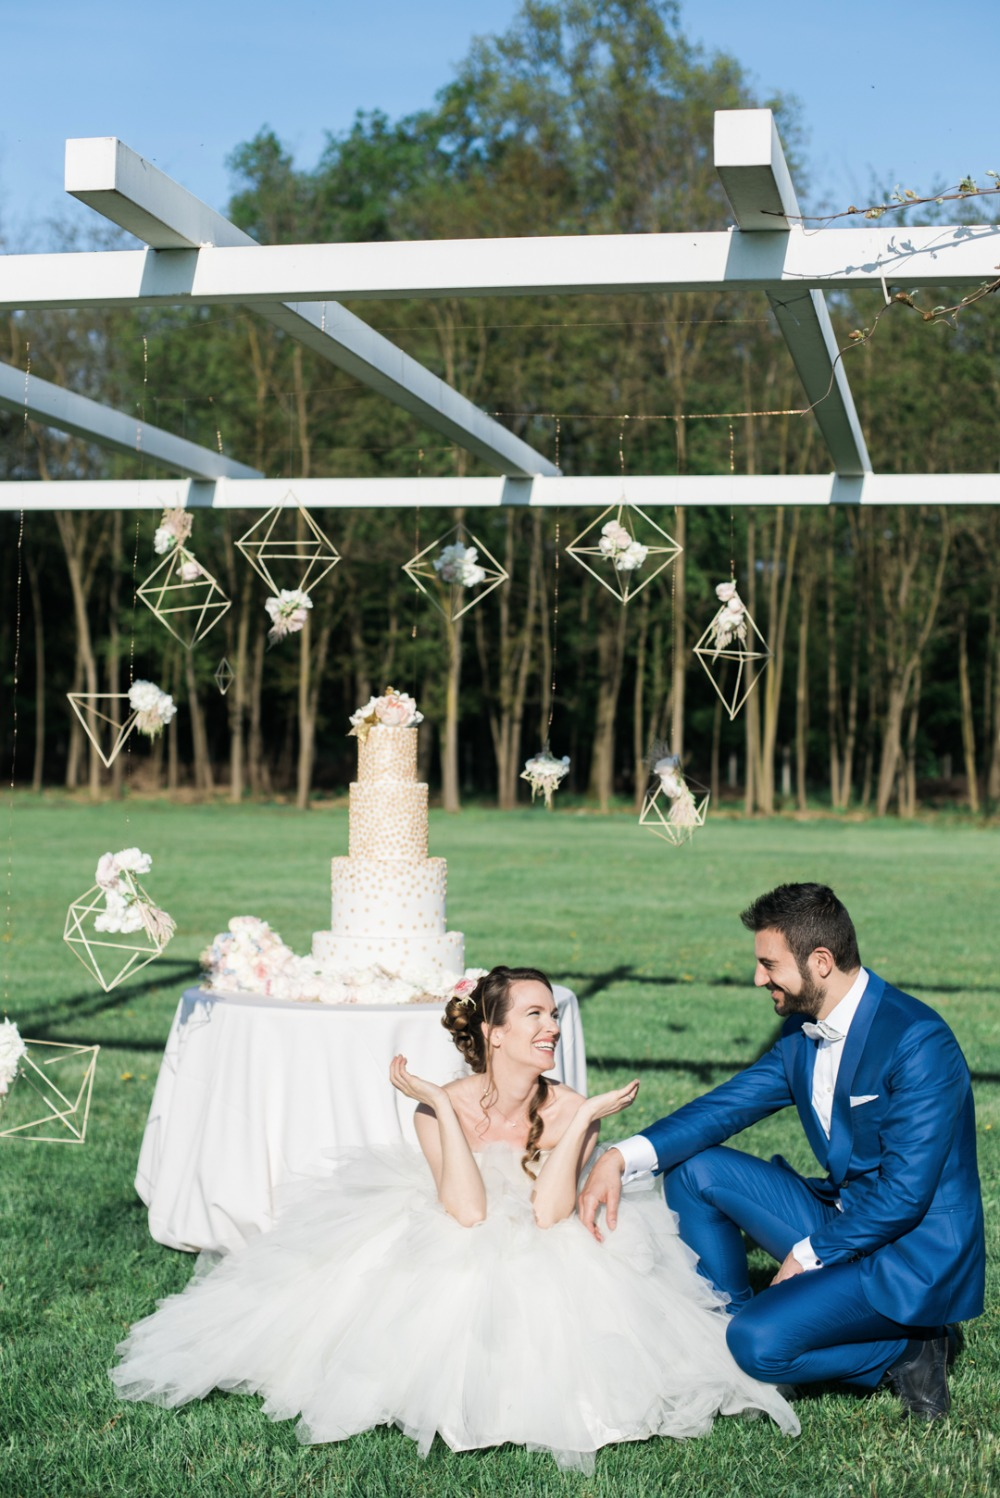 outdoor wedding cake display with hanging geometric backdrop